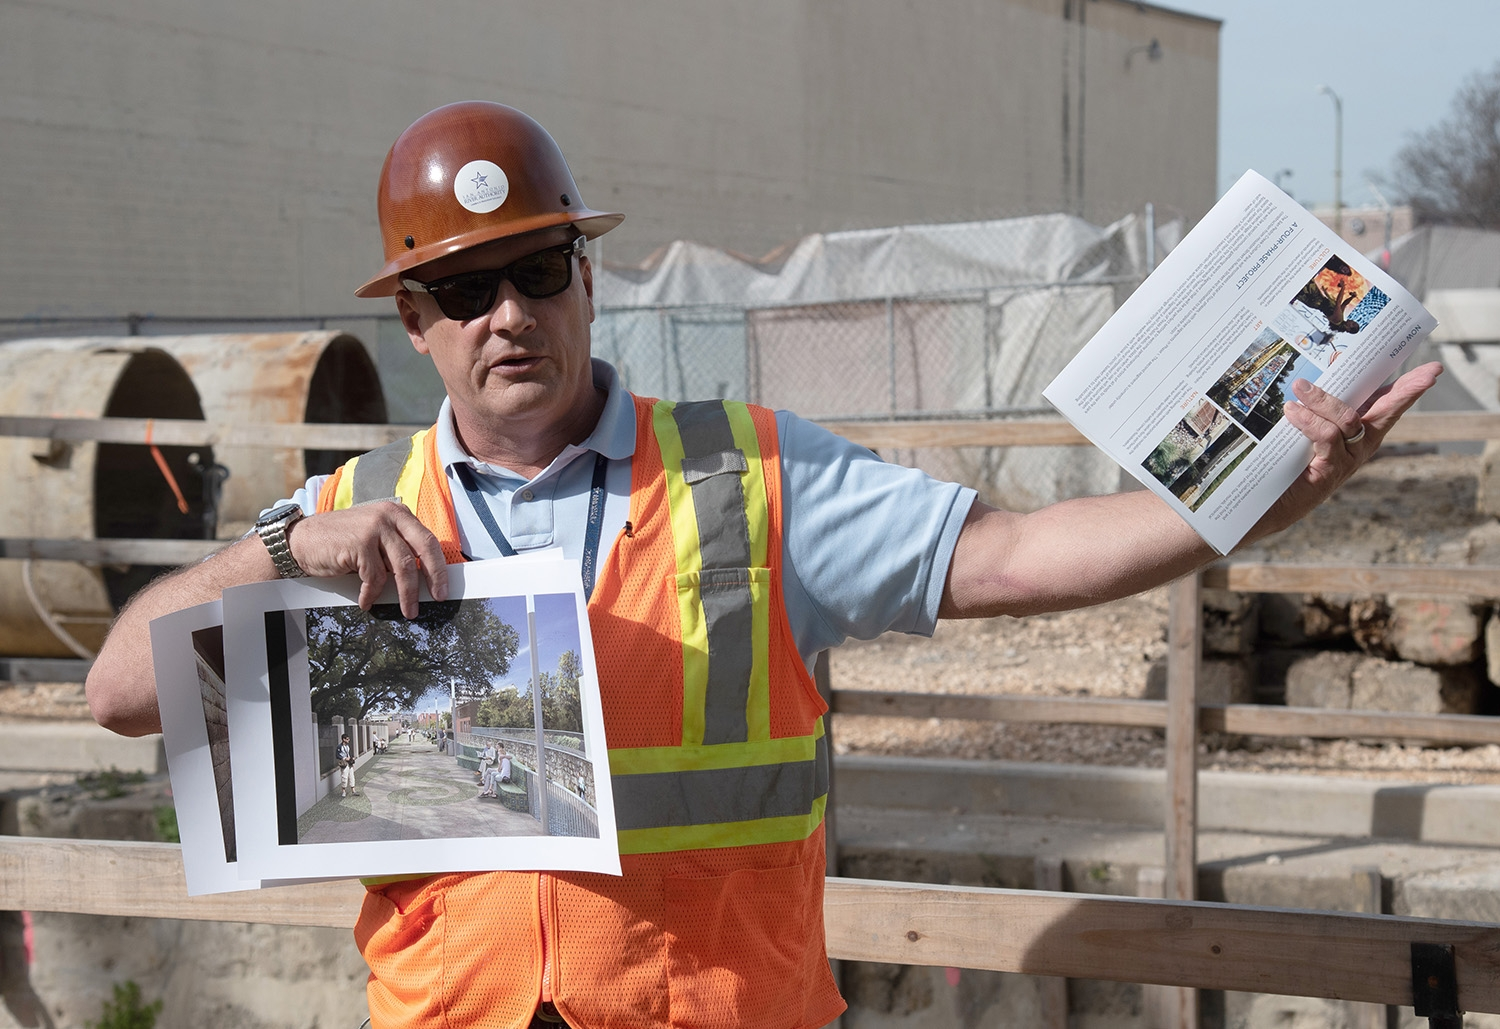 Kerry Averyt, senior engineer and project manager for the San Antonio River Authority, holds renderings while speaking during a tour over the second segment of the San Pedro Creek Culture Park Feb. 15.